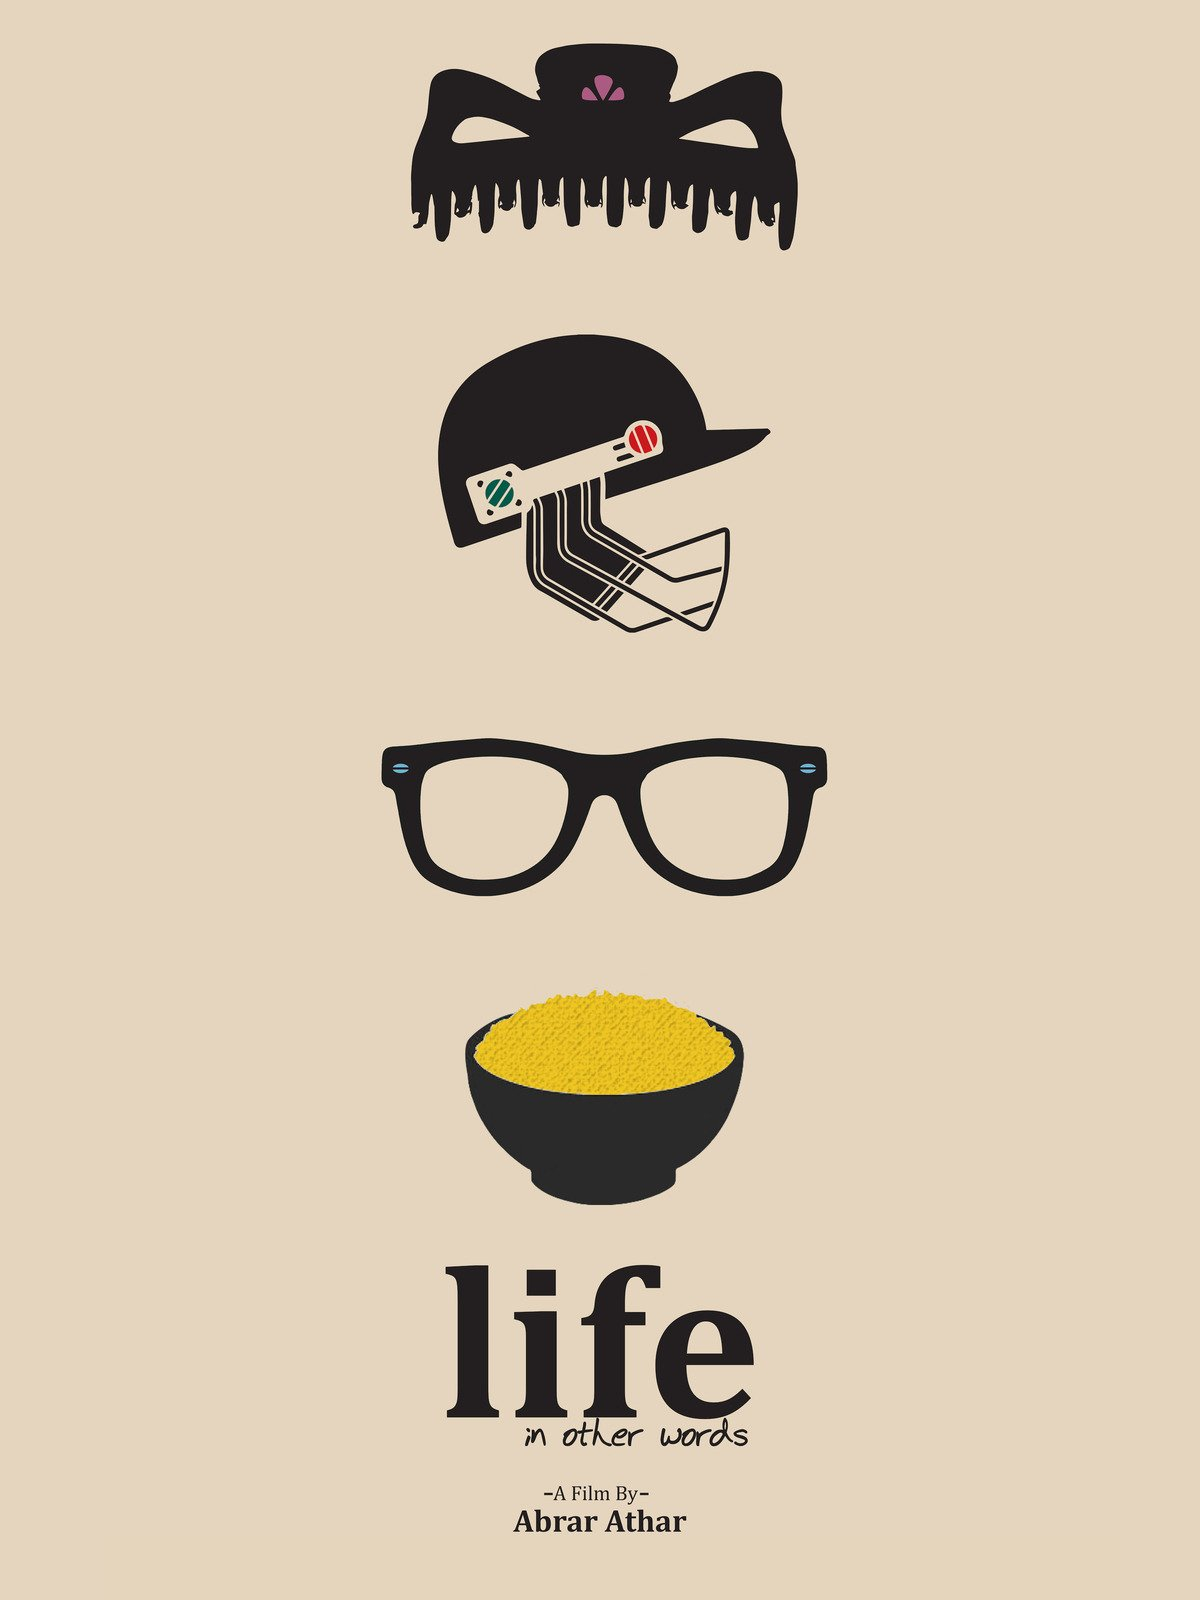 Life in Other Words